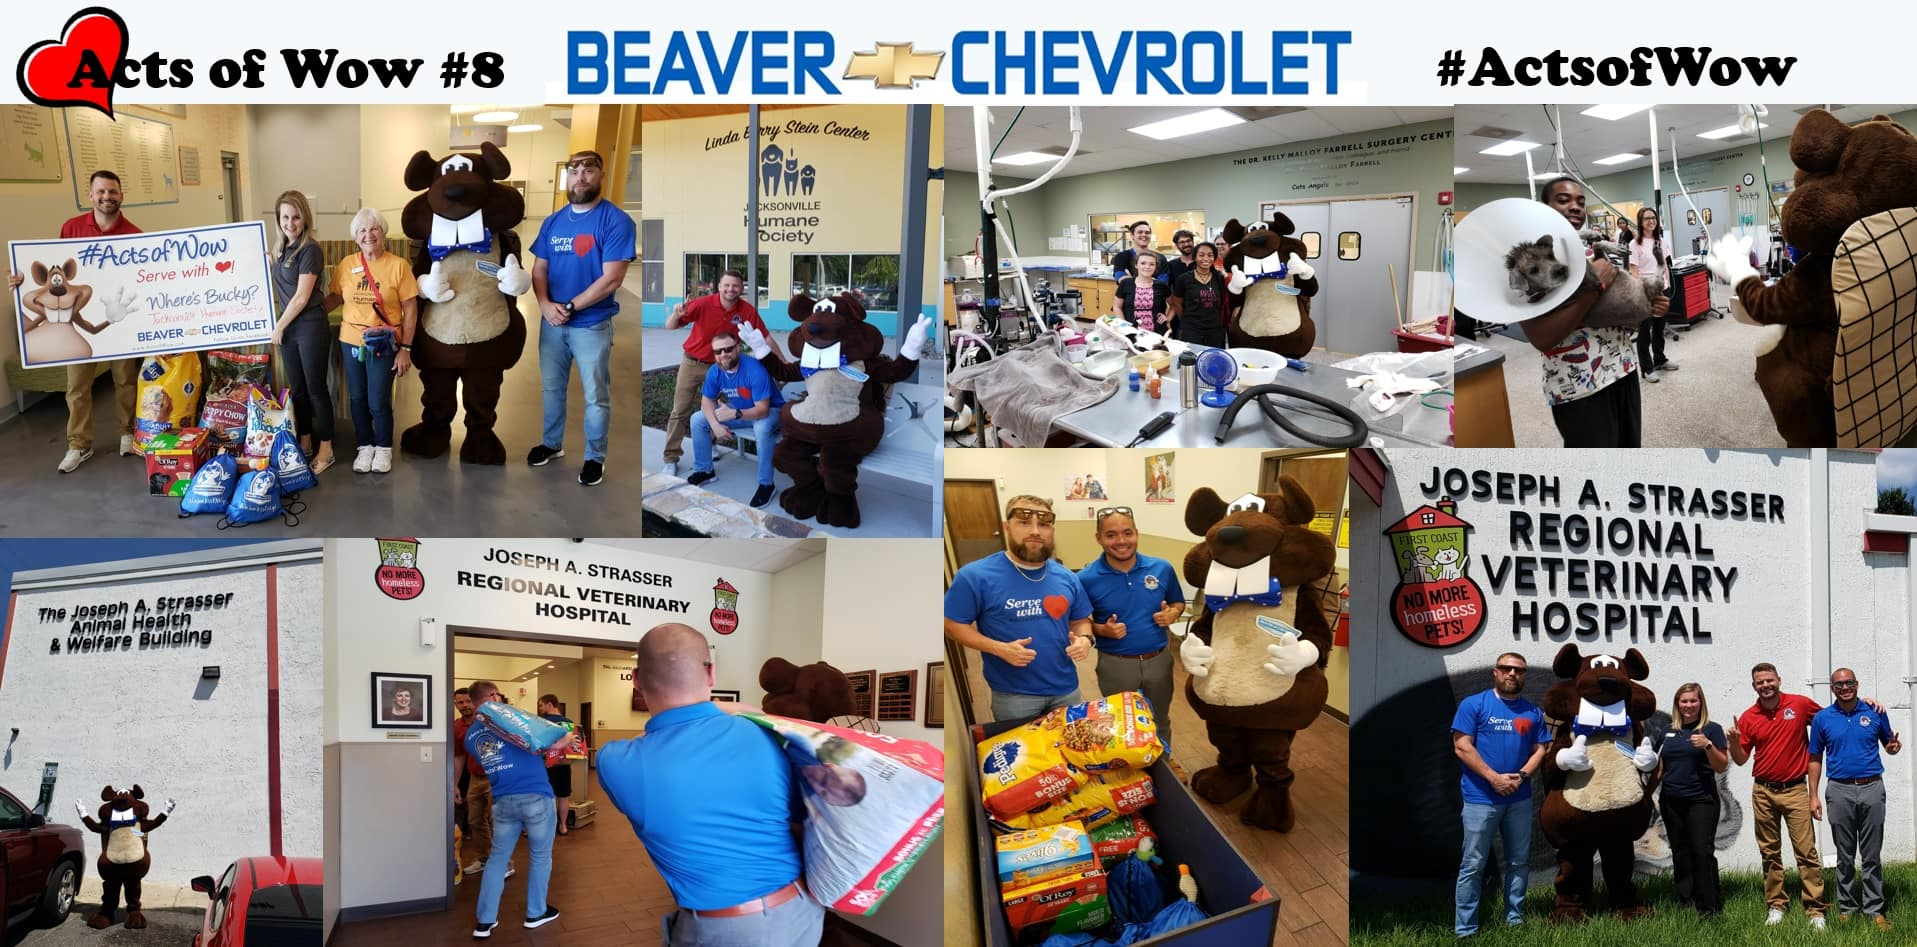 Acts of Wow #10 Collage Beaver Chevrolet Jacksonville Florida